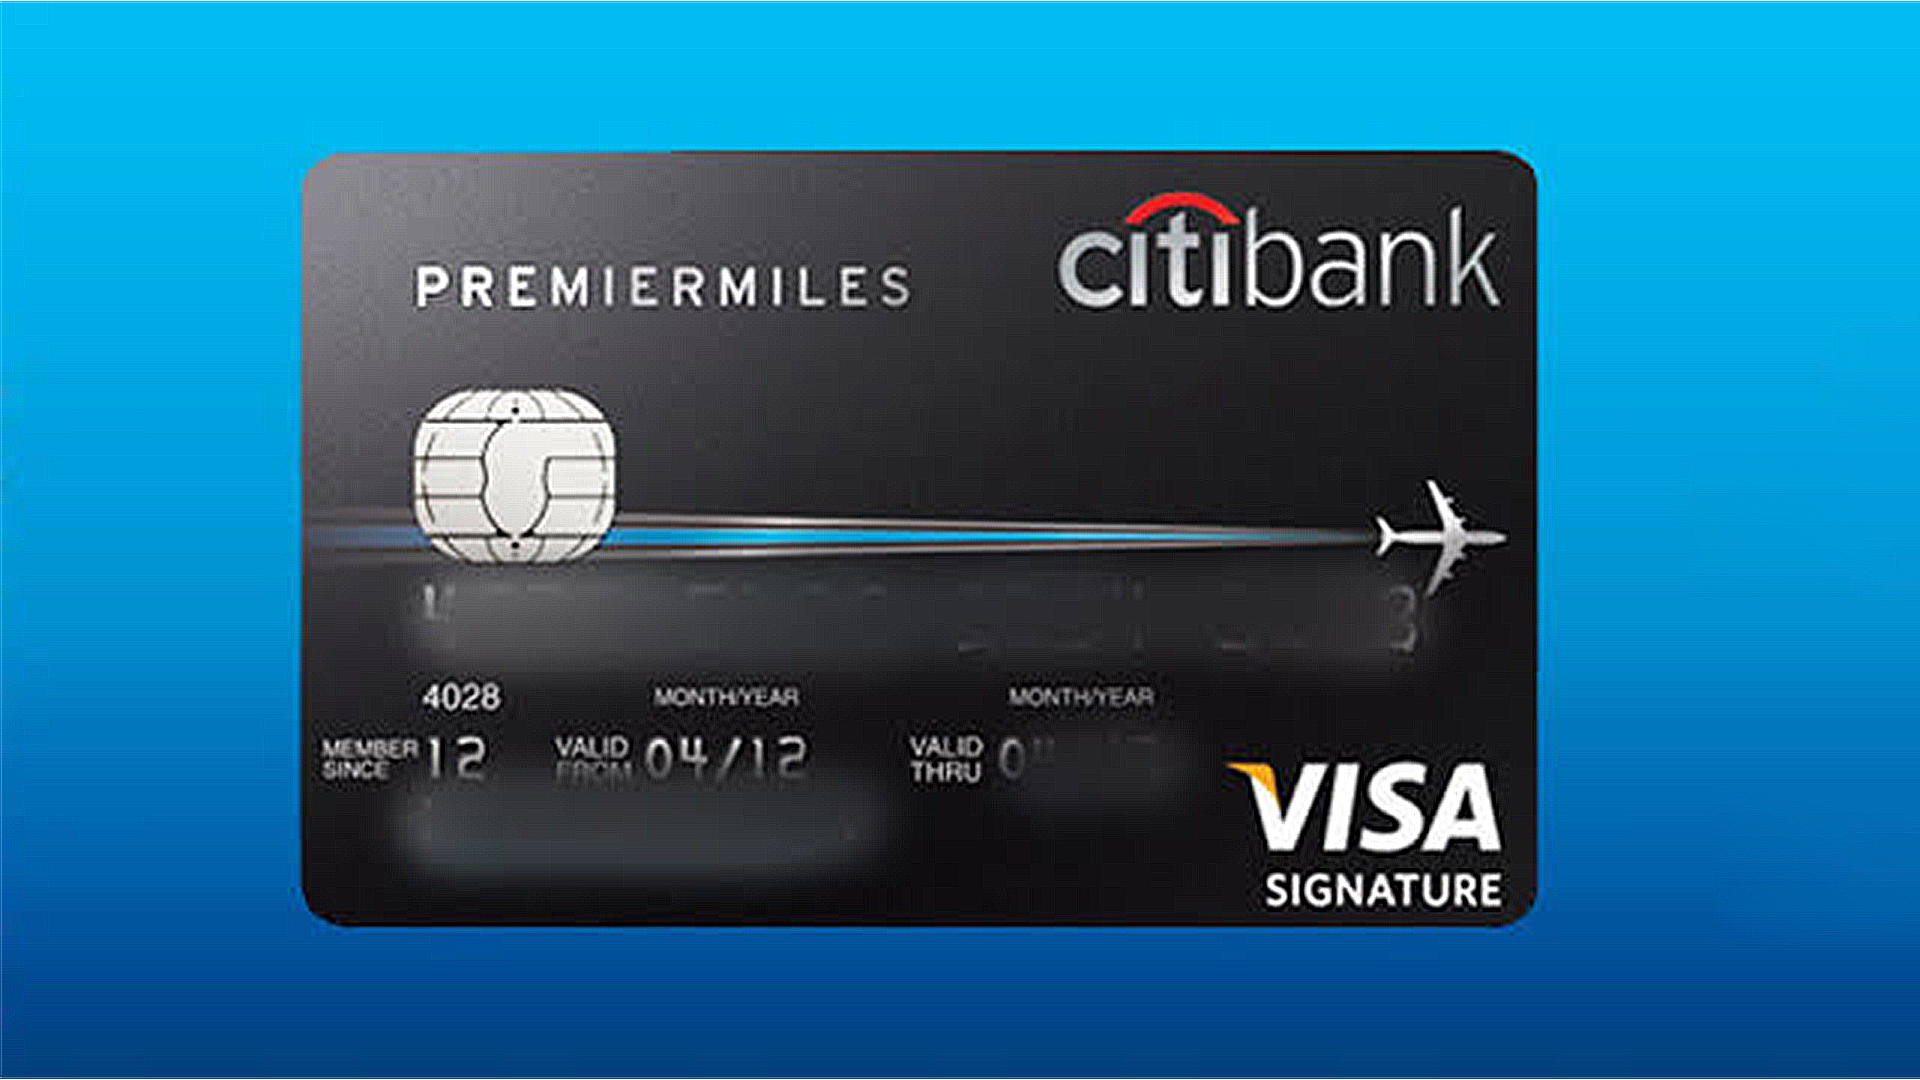 Citibank Premier Miles Credit Card